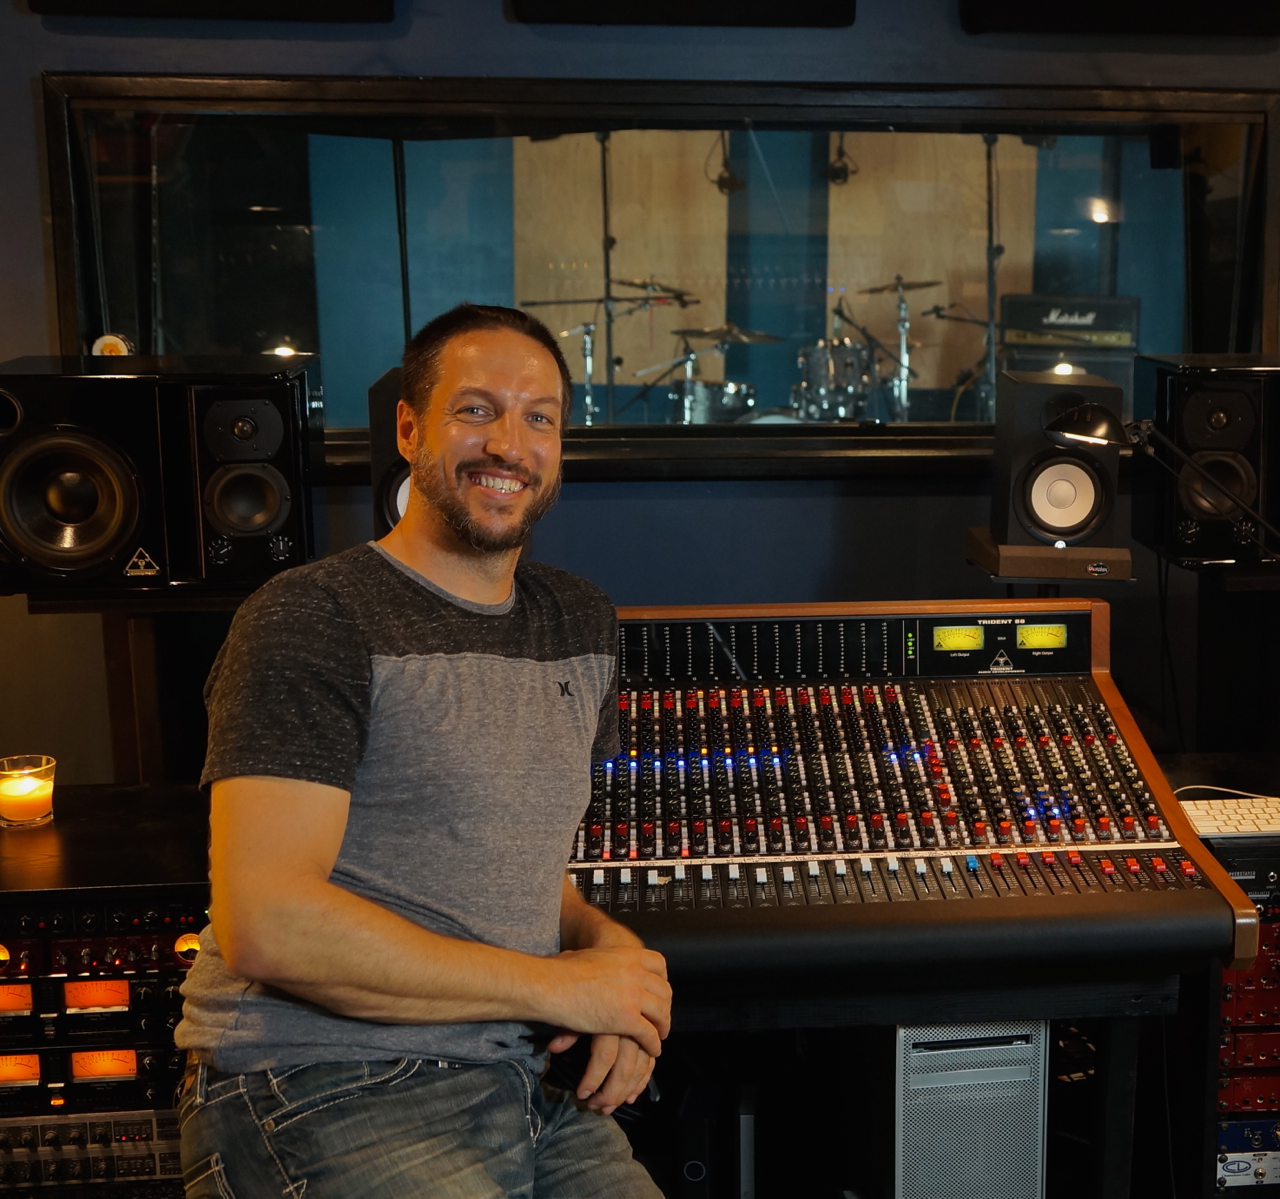 Producer and Recording Engineer Charlie Waymire at Ultimate Studios, Inc with the Trident 88 analog console